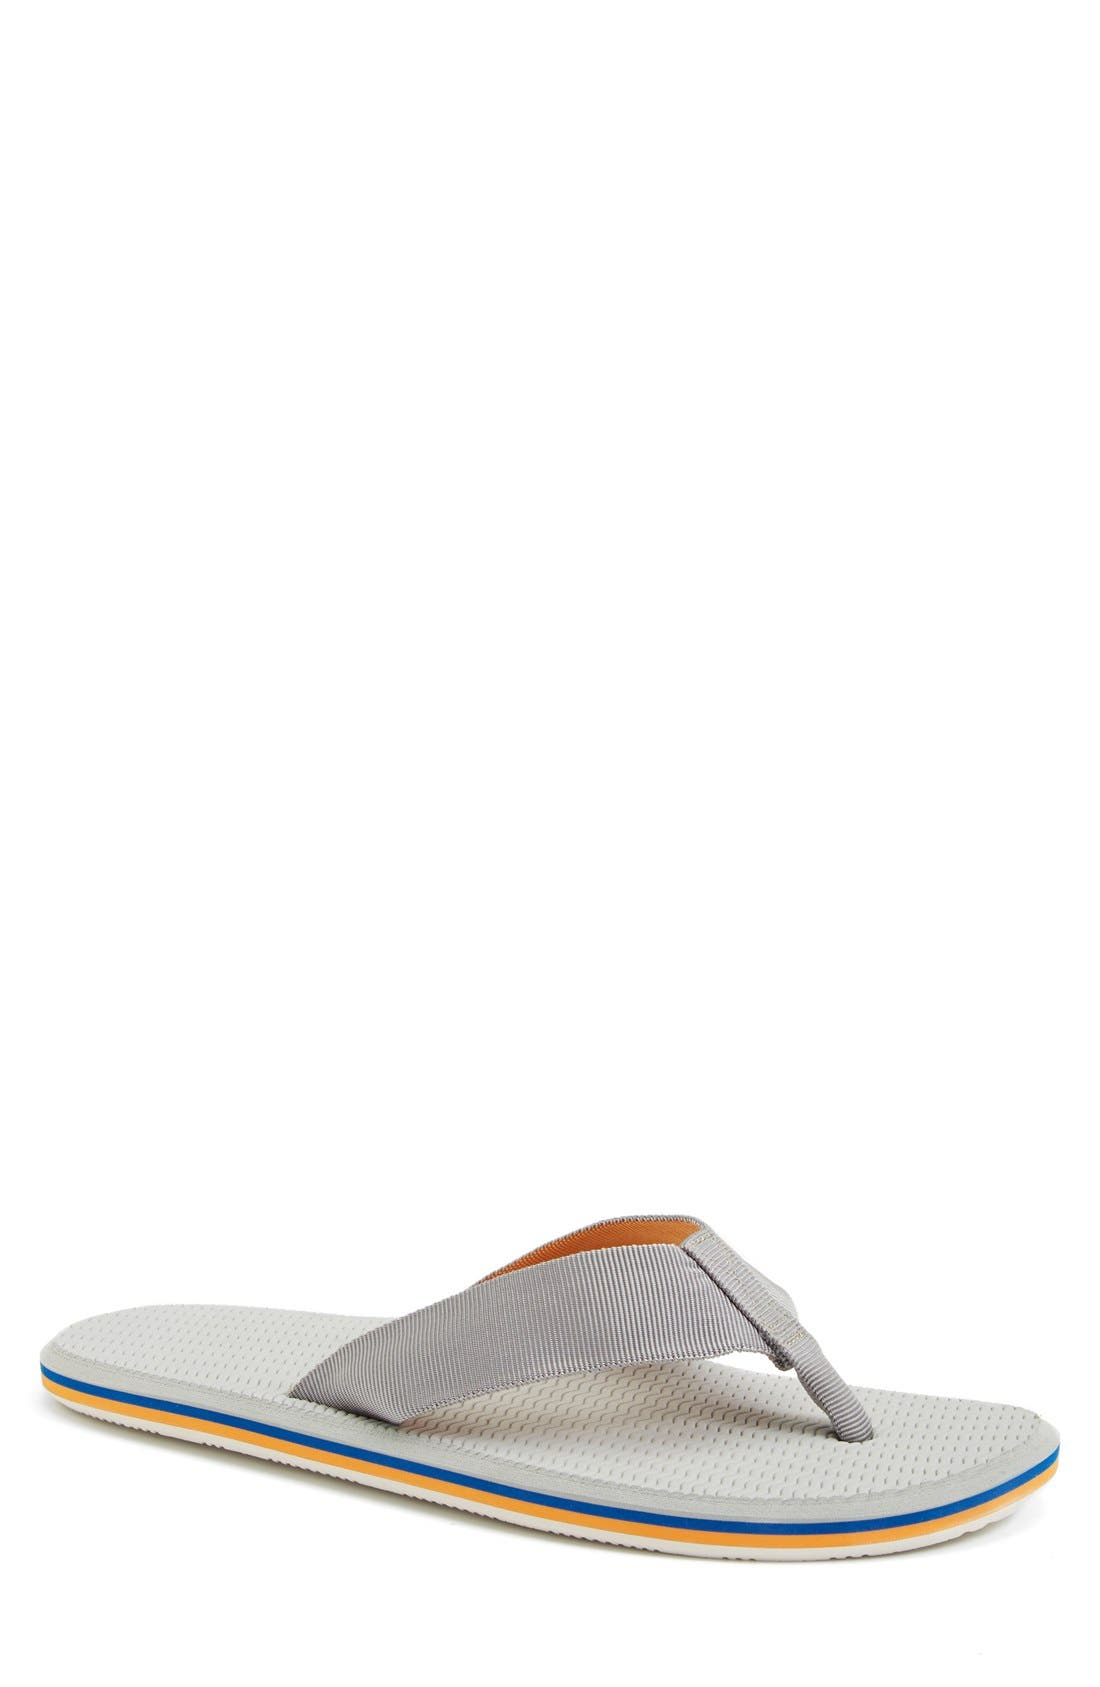 'Dunes' Flip Flop,                         Main,                         color, Grey/ Blue/ Orange